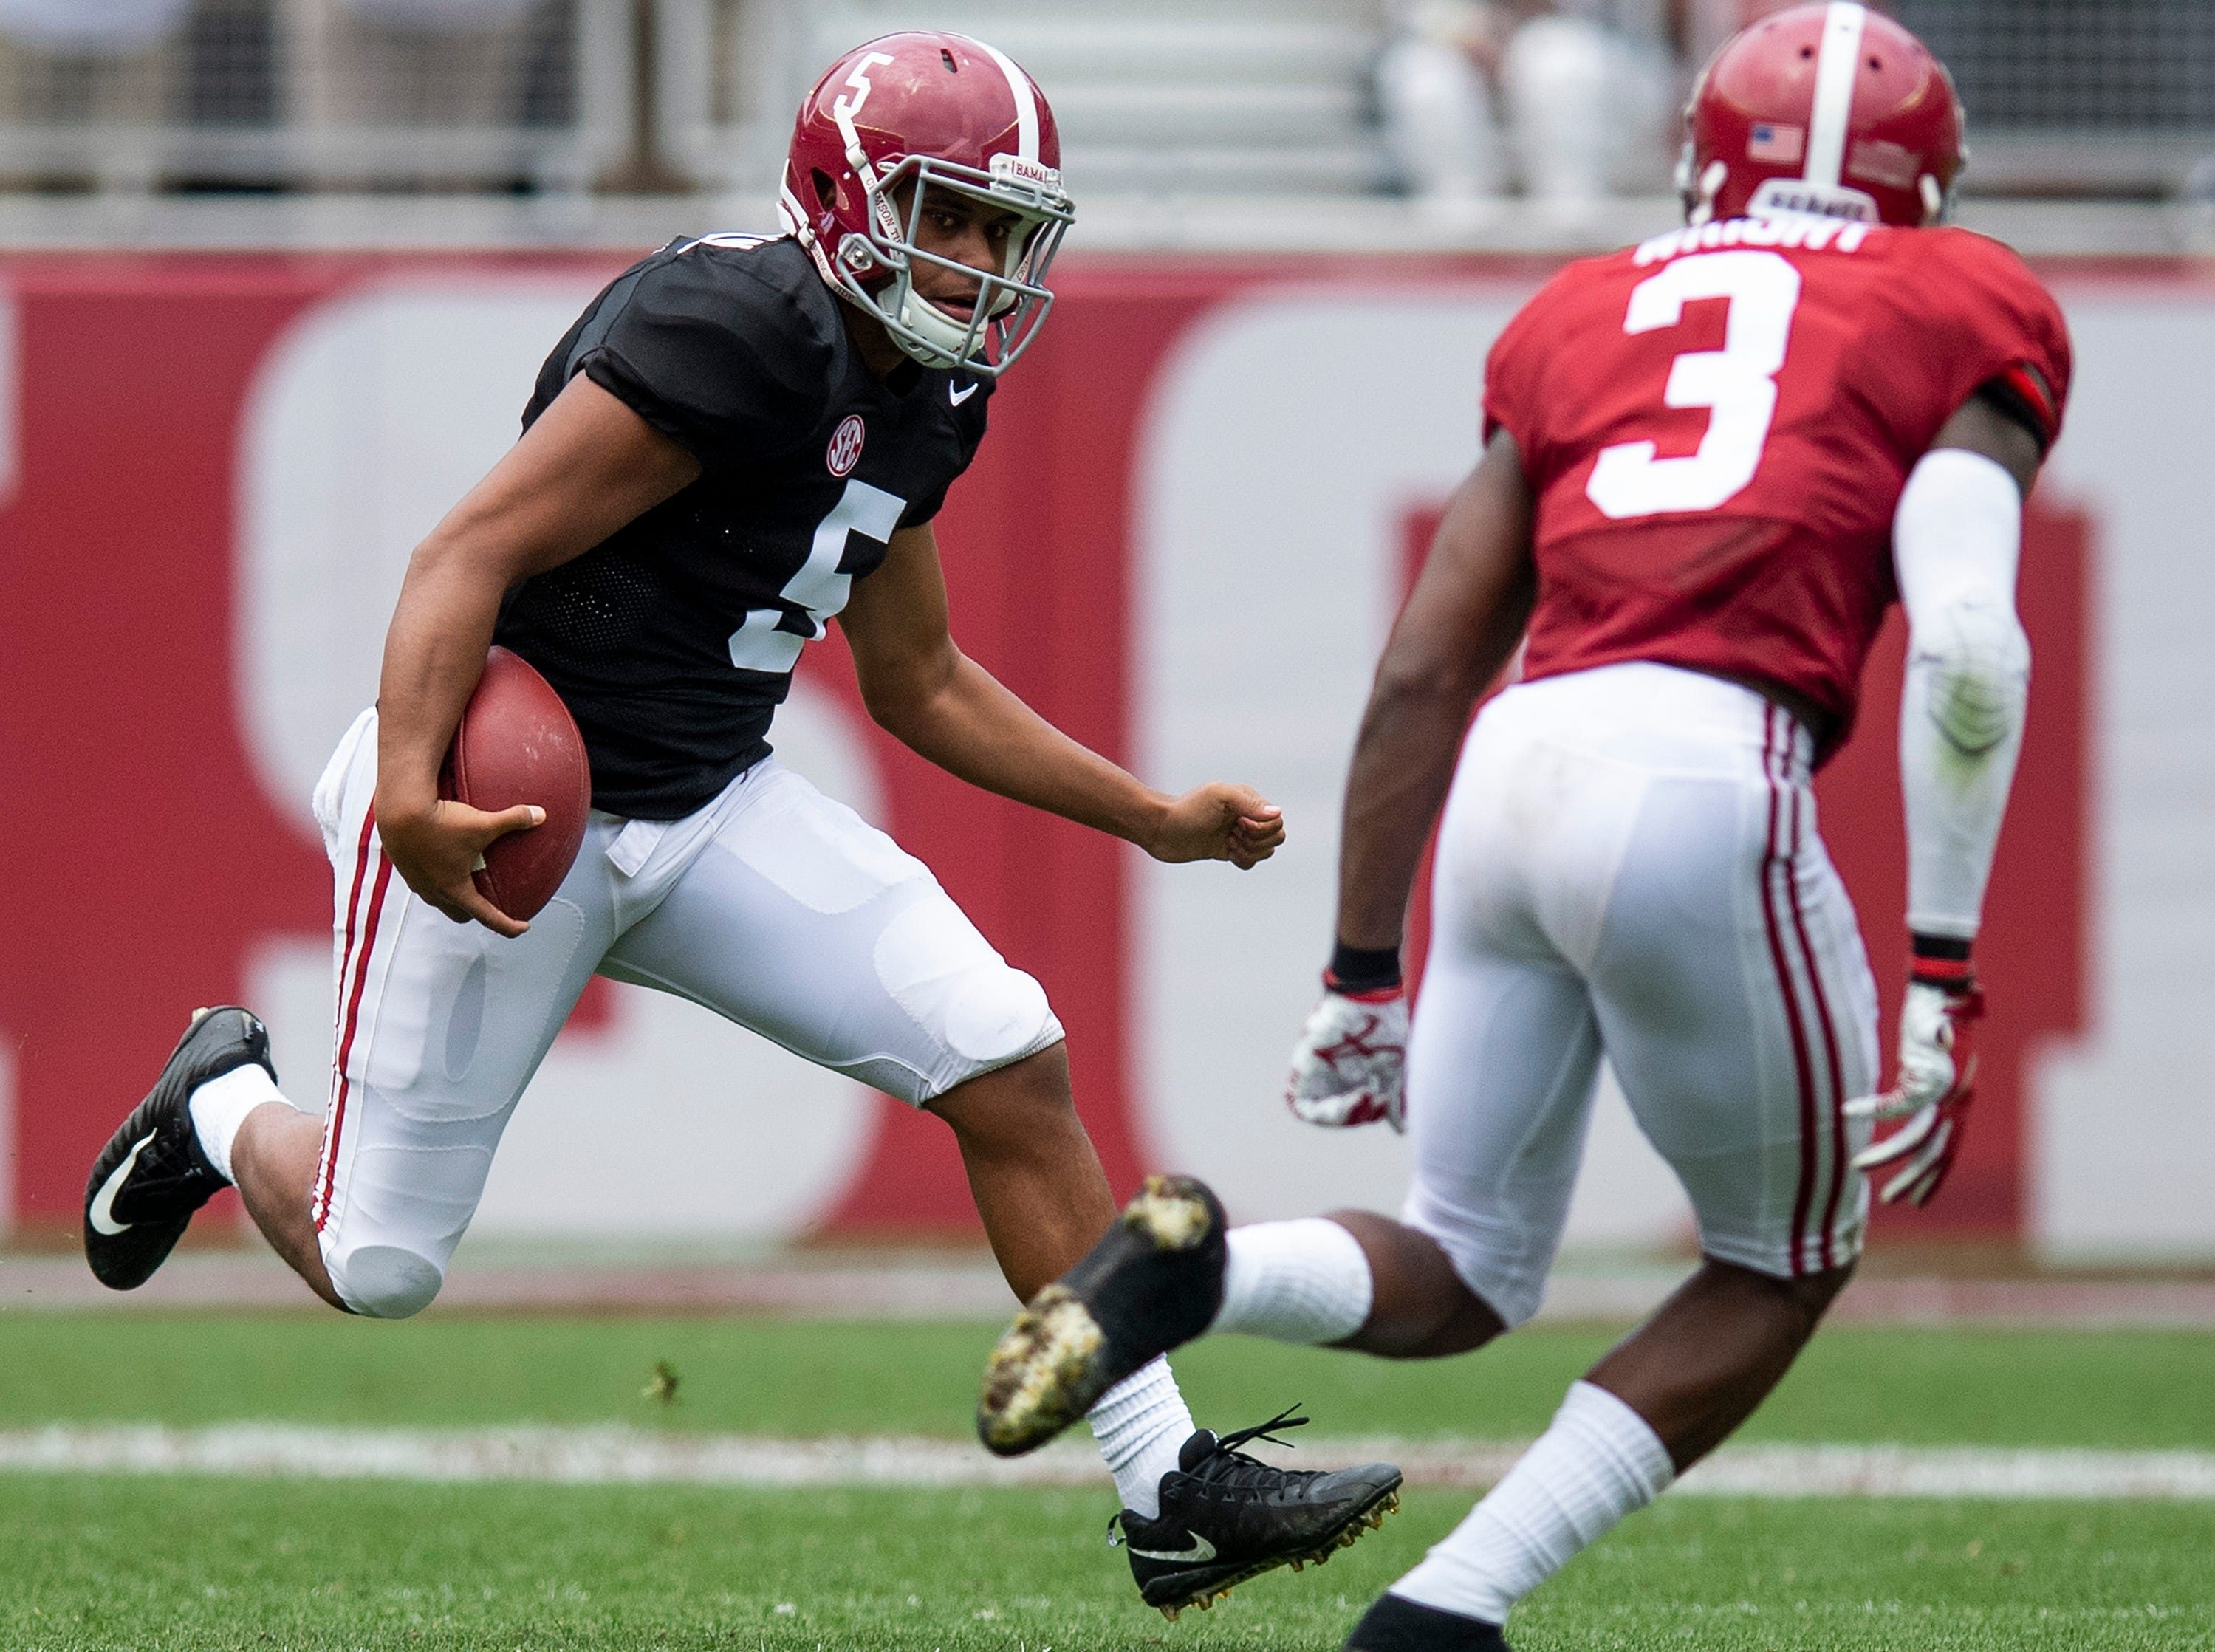 Quarterback Taulia Tagovailoa (5) scrambles during second half action in the Alabama A-Day spring football scrimmage game at Bryant Denny Stadium in Tuscaloosa, Ala., on Saturday April 13, 2019.